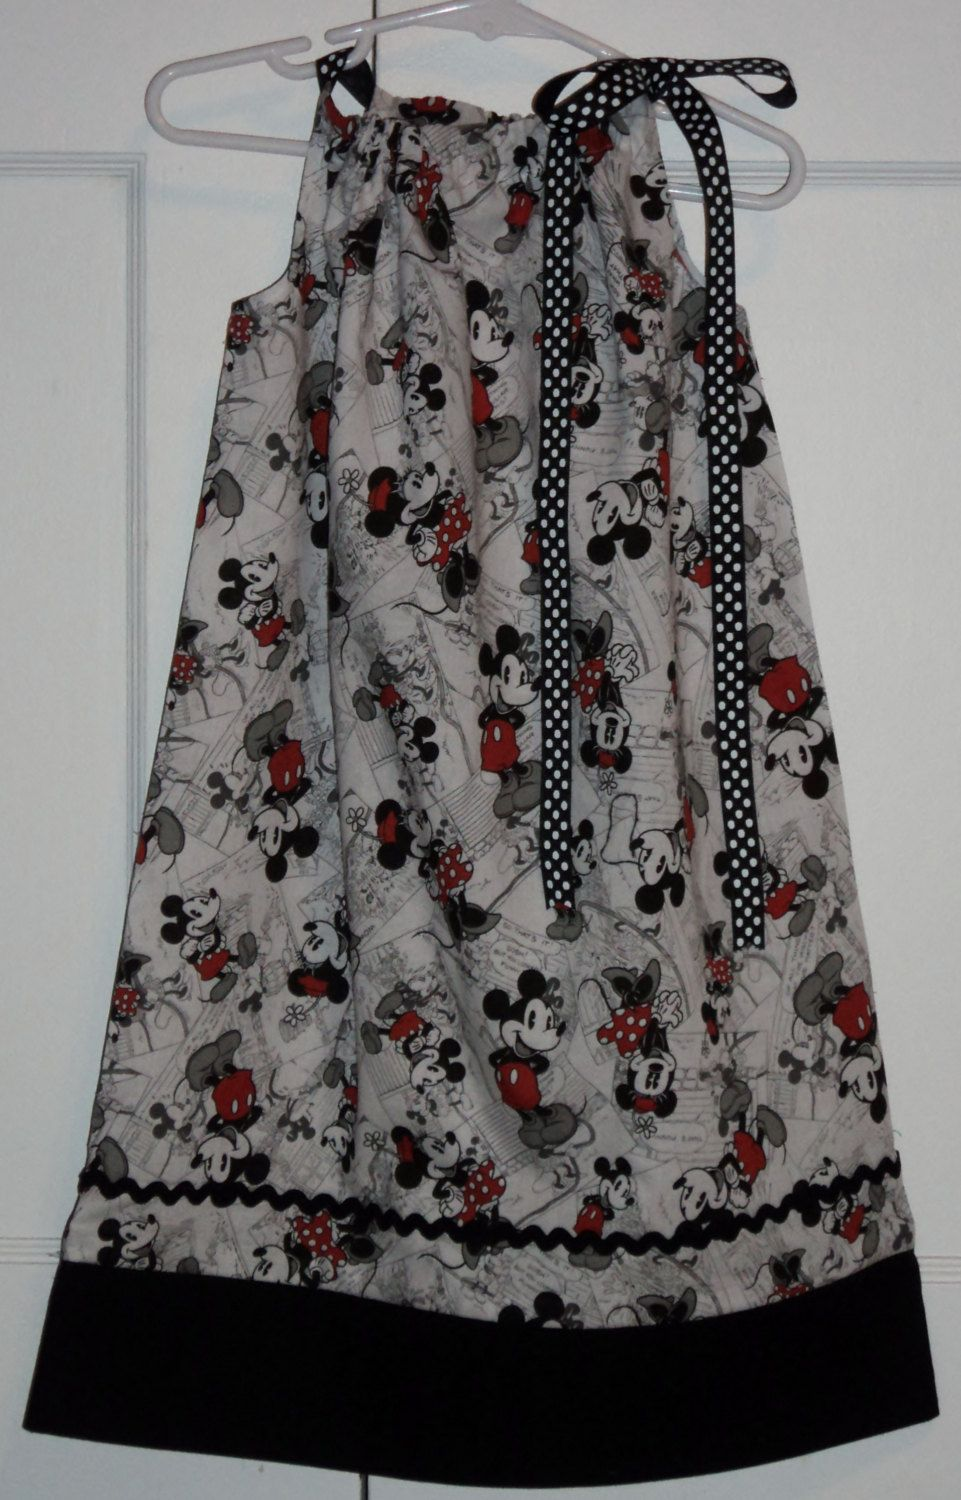 Minnie Mouse Dress Mickey Mouse Pillowcase Dress Classic Look Red Black White Dress. $19.00 & Minnie Mouse Dress Mickey Mouse Pillowcase Dress Classic Look Red ... pillowsntoast.com